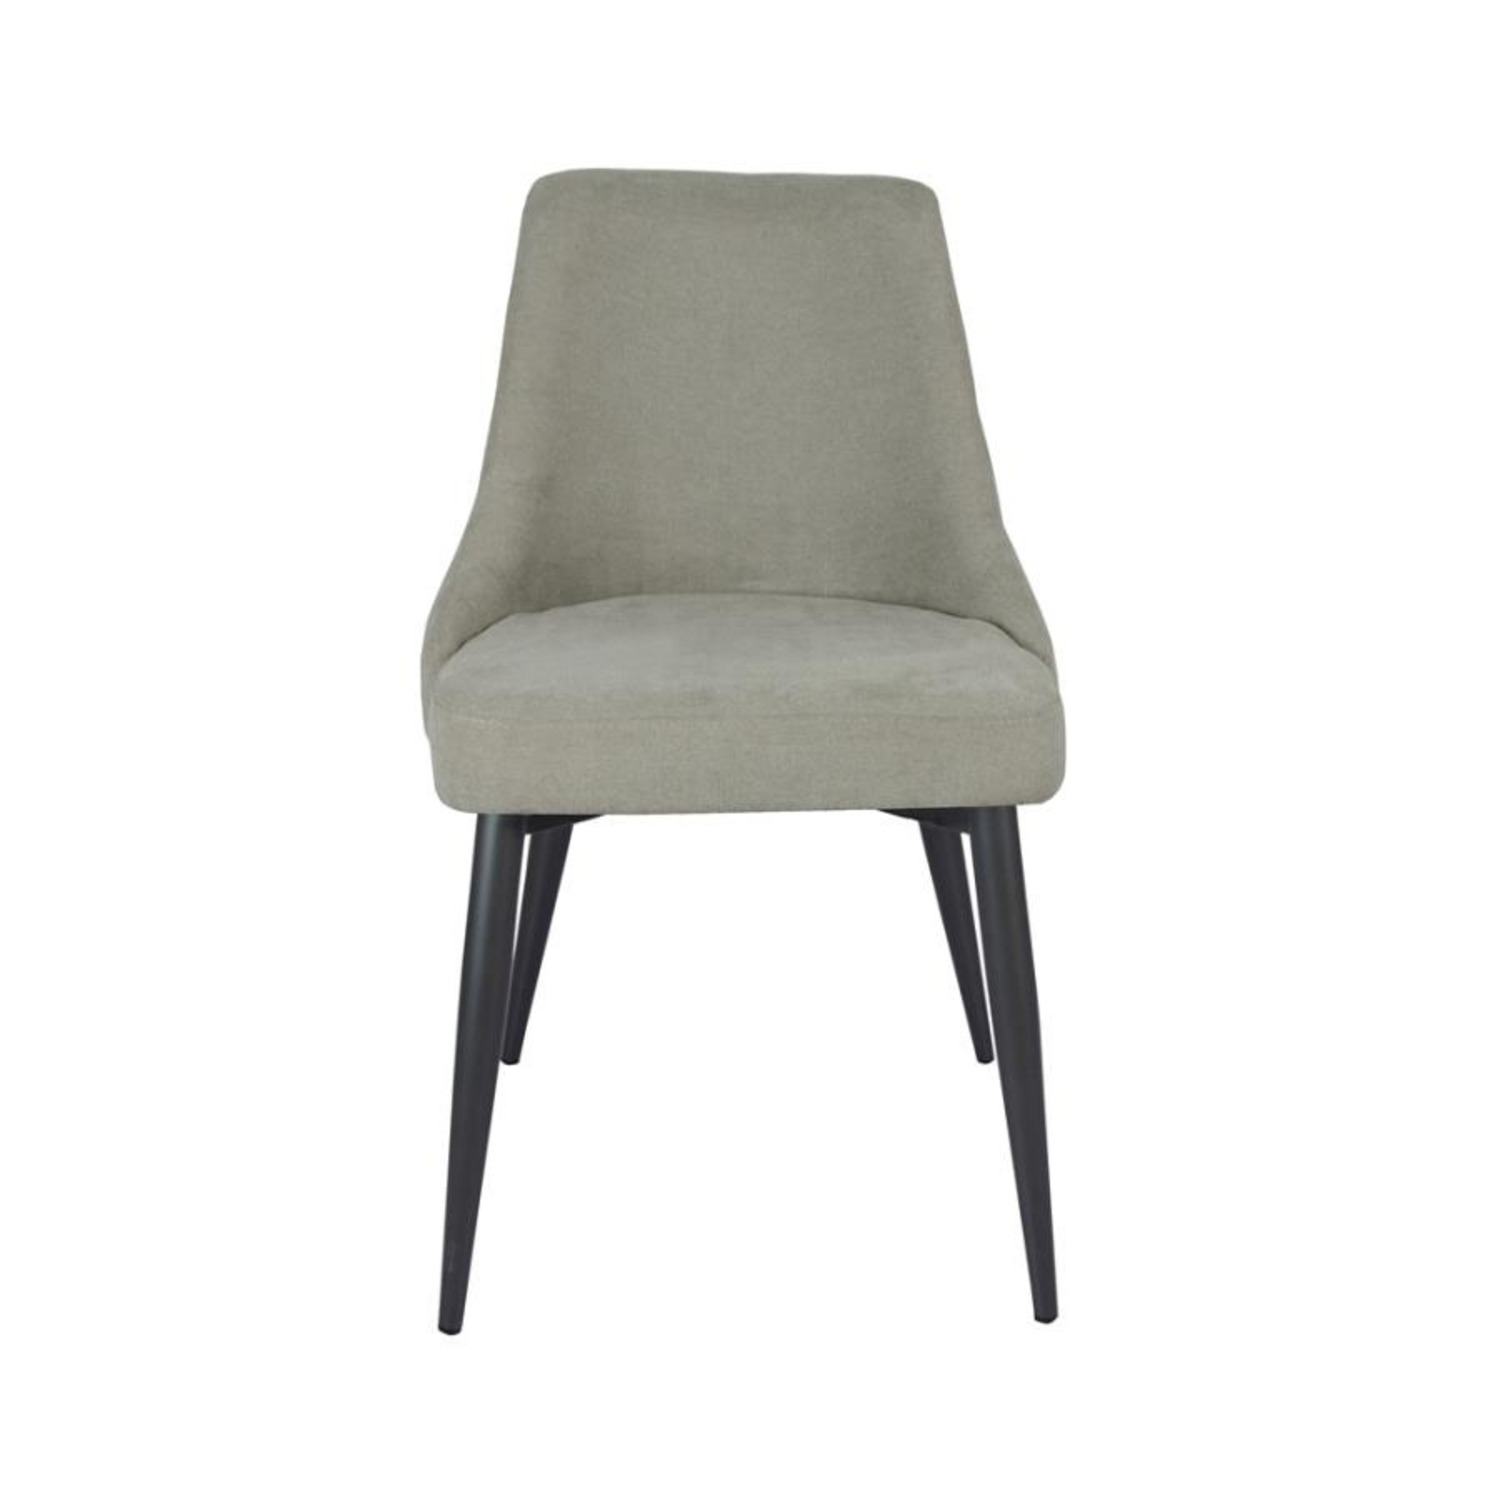 Dining Chair In Off White Microfiber W/Curved Back - image-0